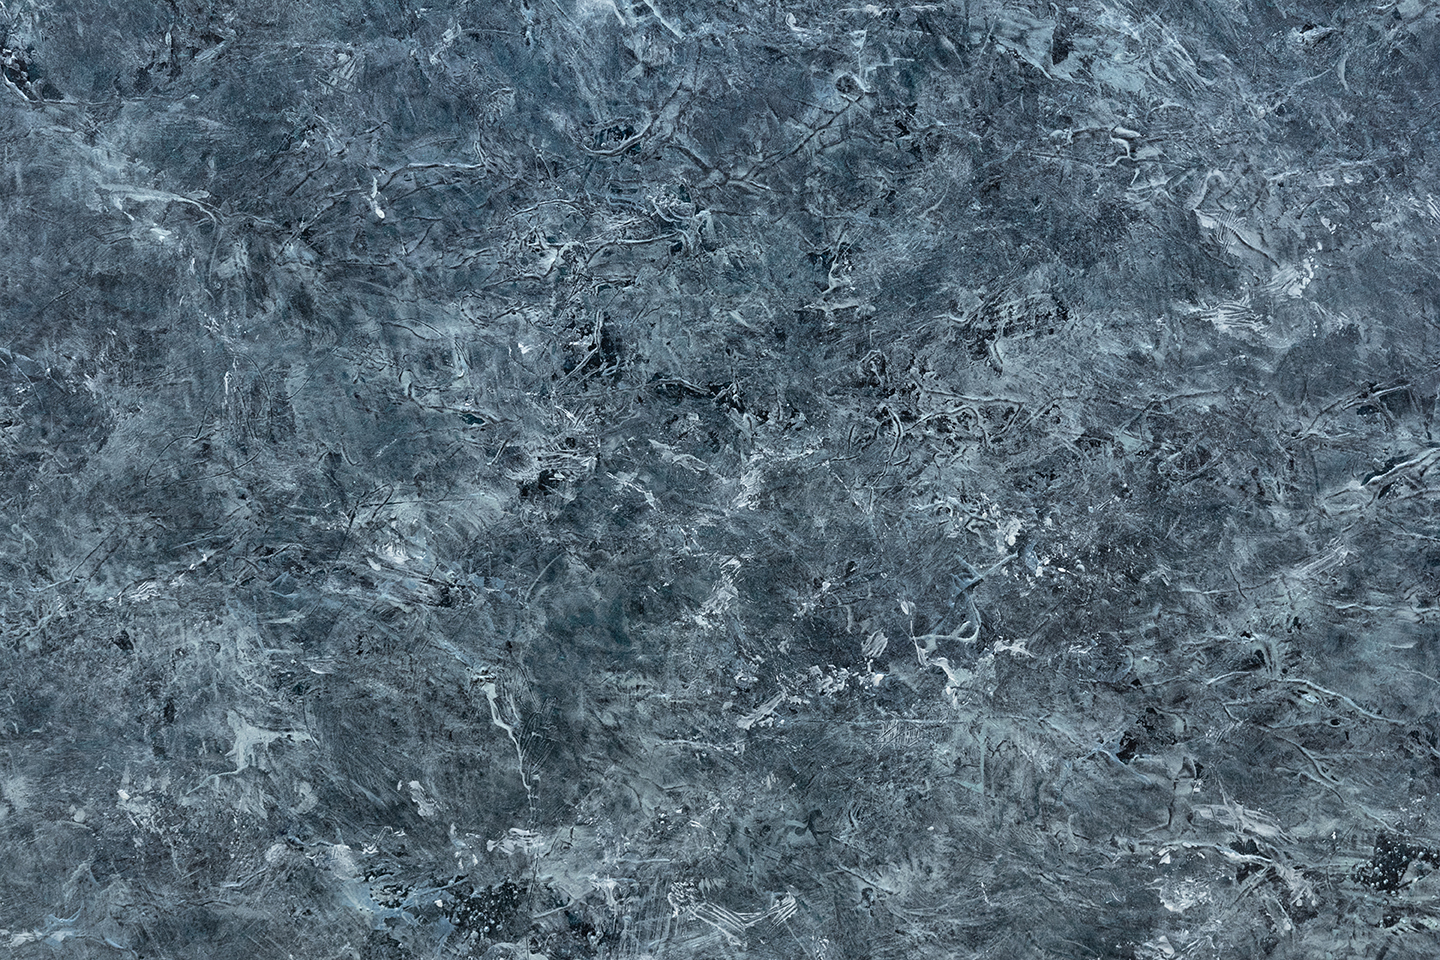 "Superior  (detail) 2019 oil, sand, and iron filings on canvas 85 x 60"" / 216 x 152 cm"